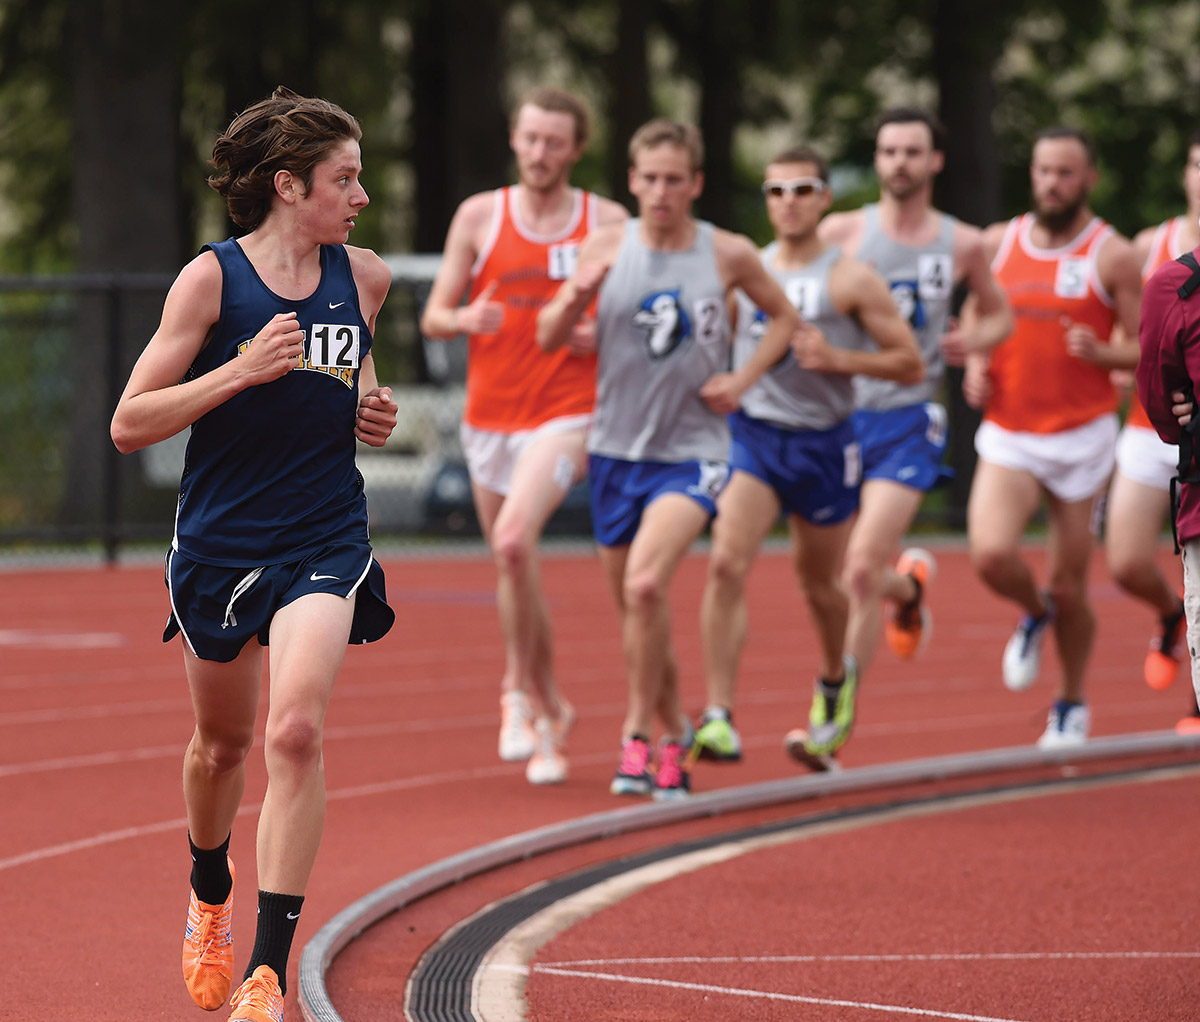 Kevin Schofield '18 looks back to see who might be gaining on him during the Landmark Track Championship.